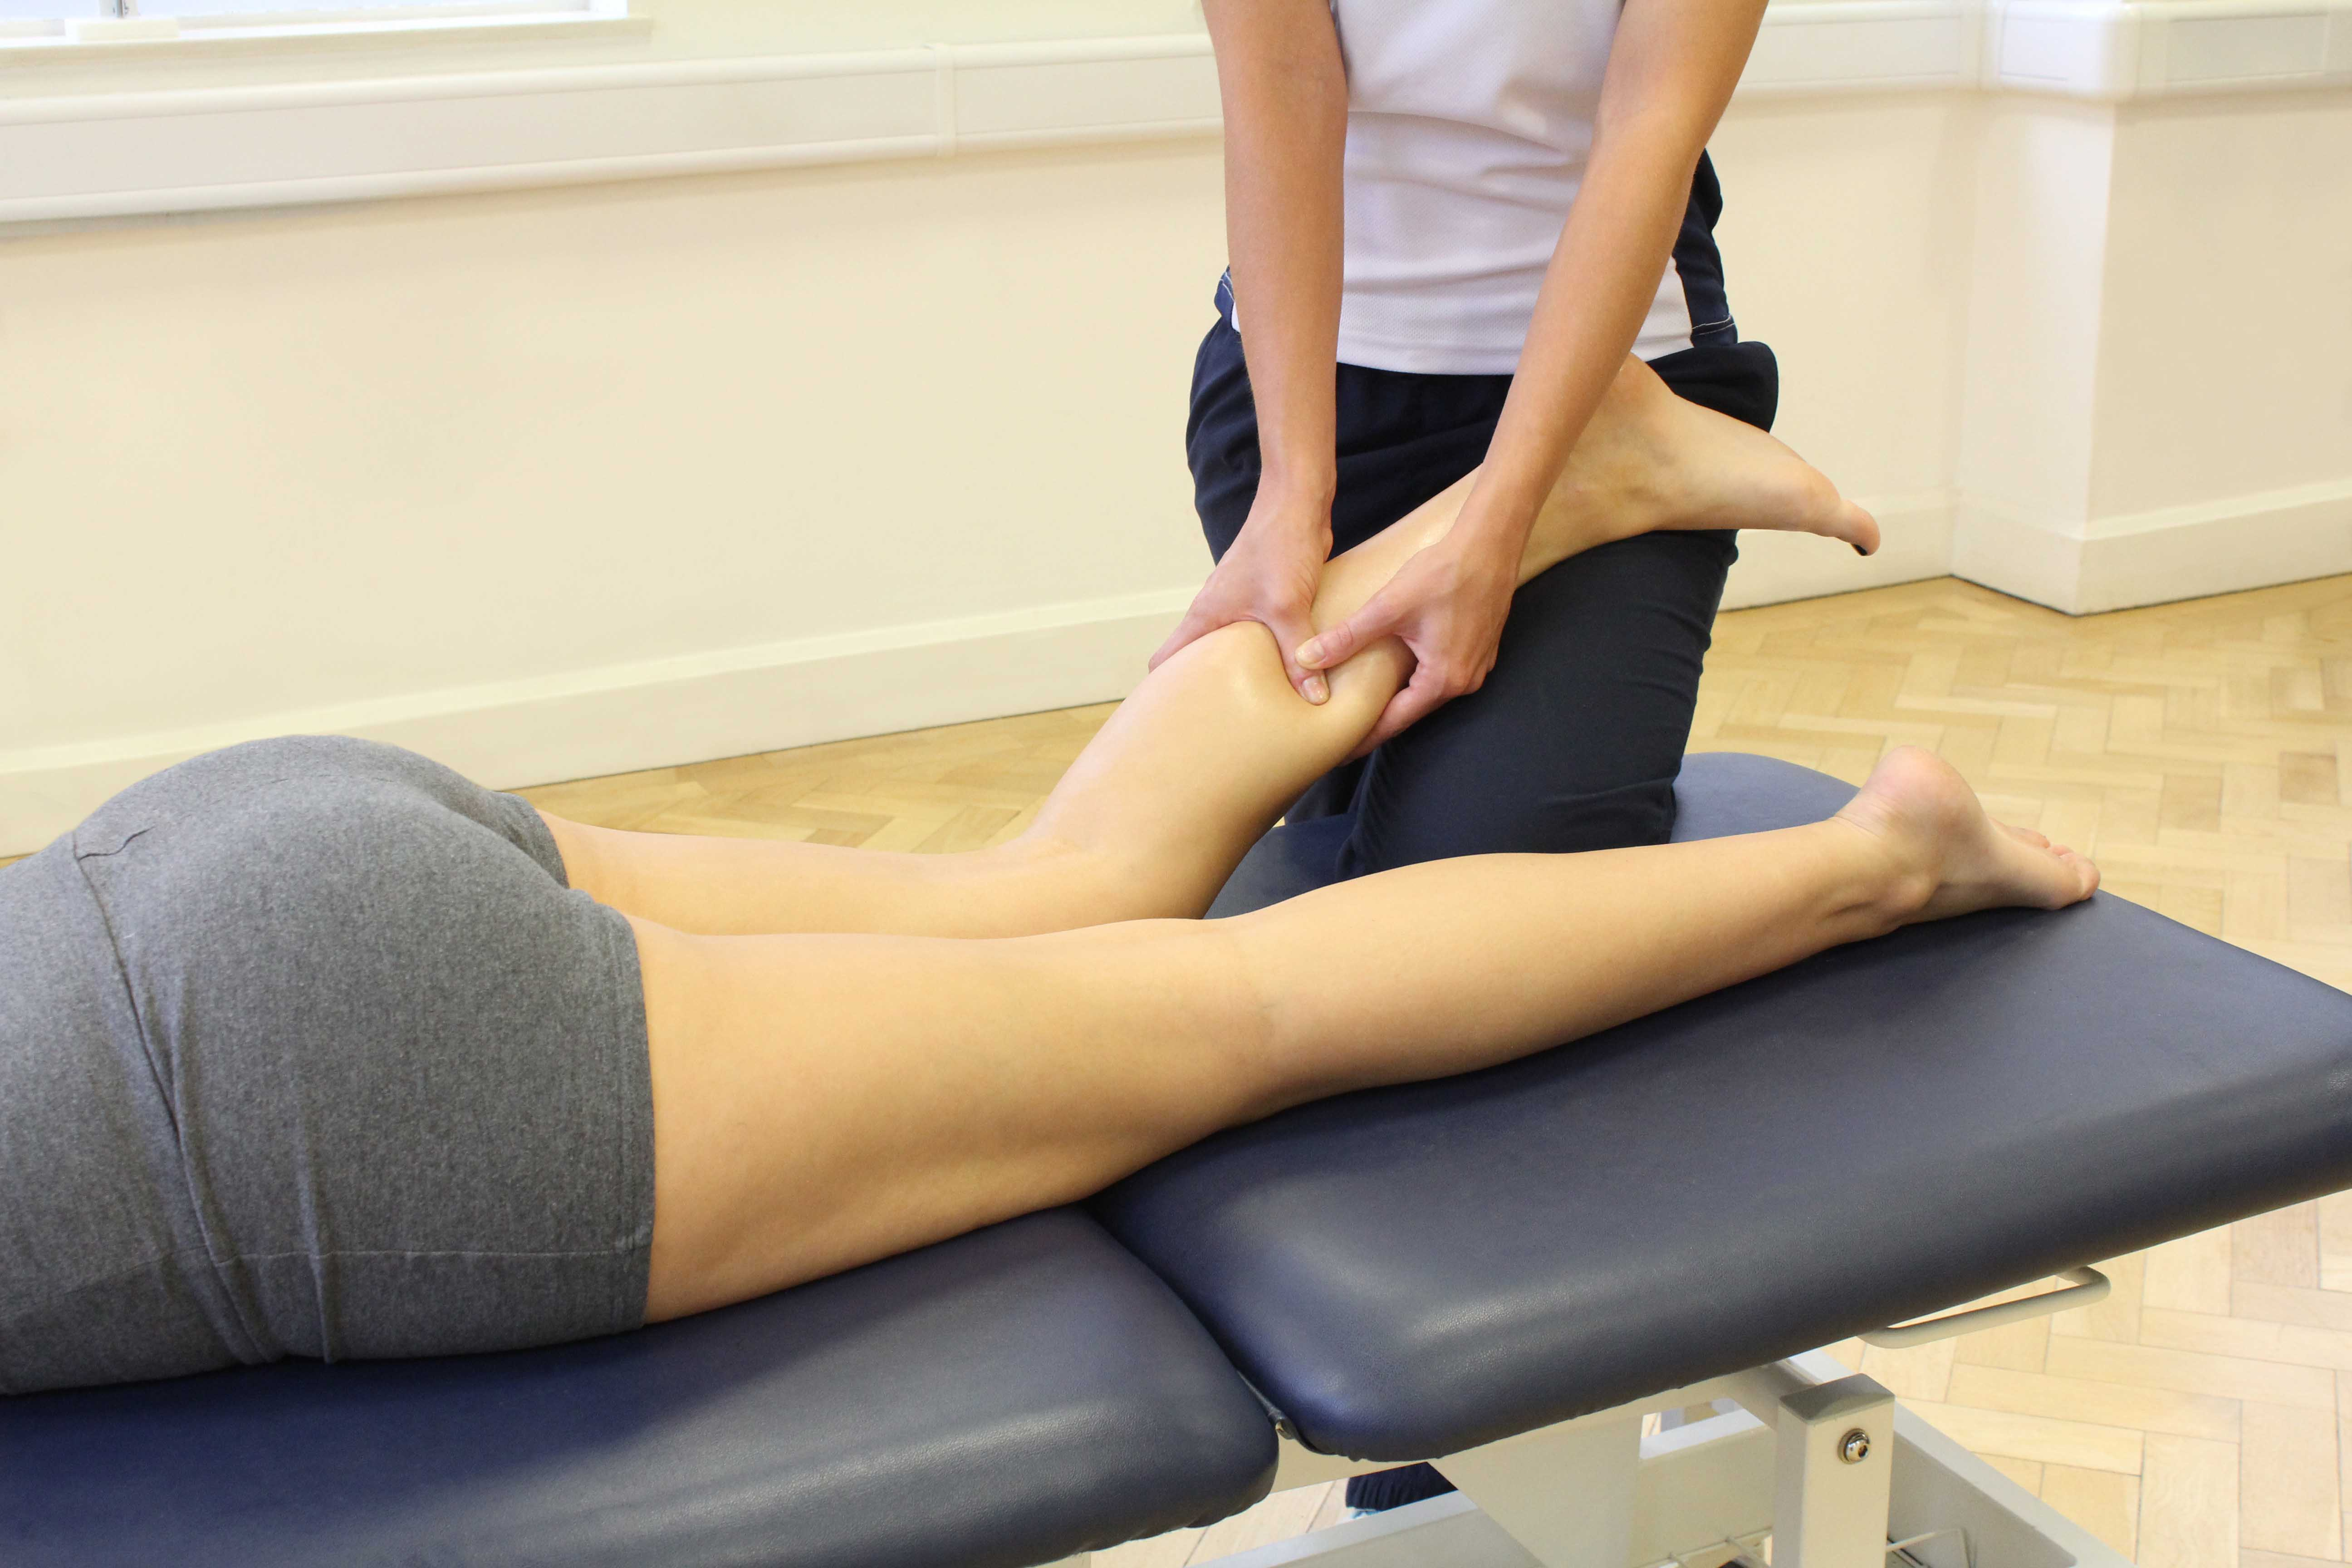 Deep tissue massage on soleus muscle